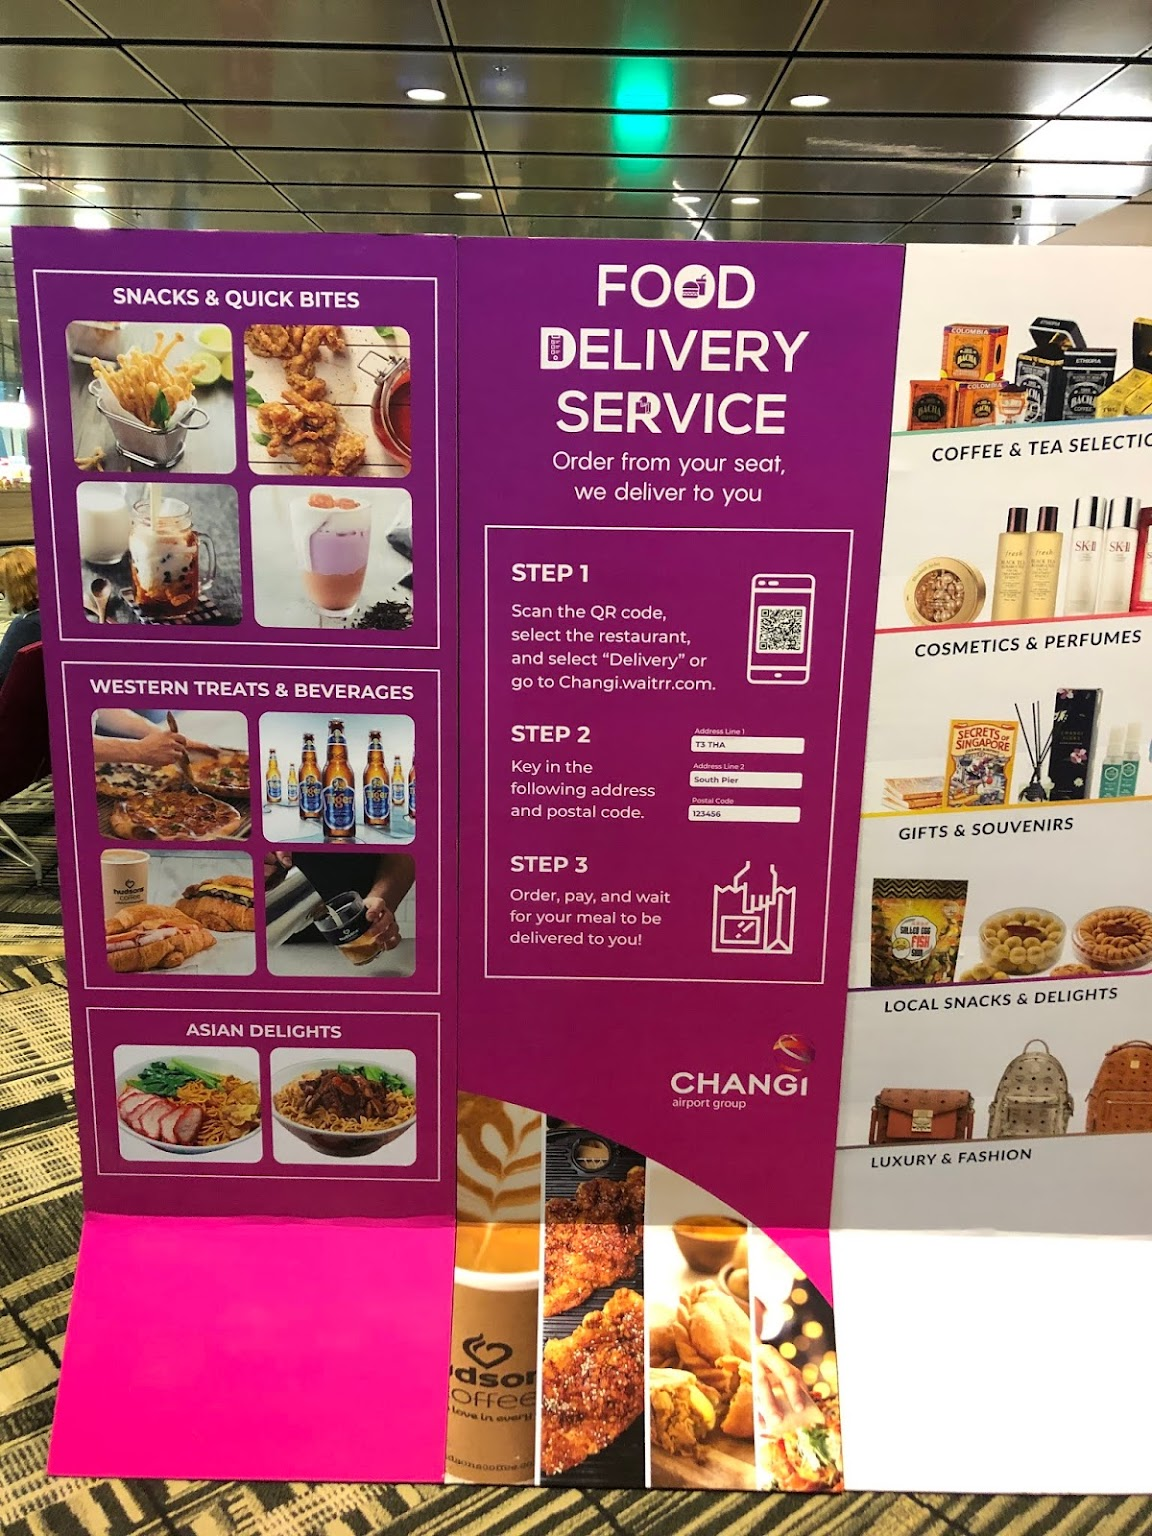 singapore transit area and food ordering during the covid pandemic